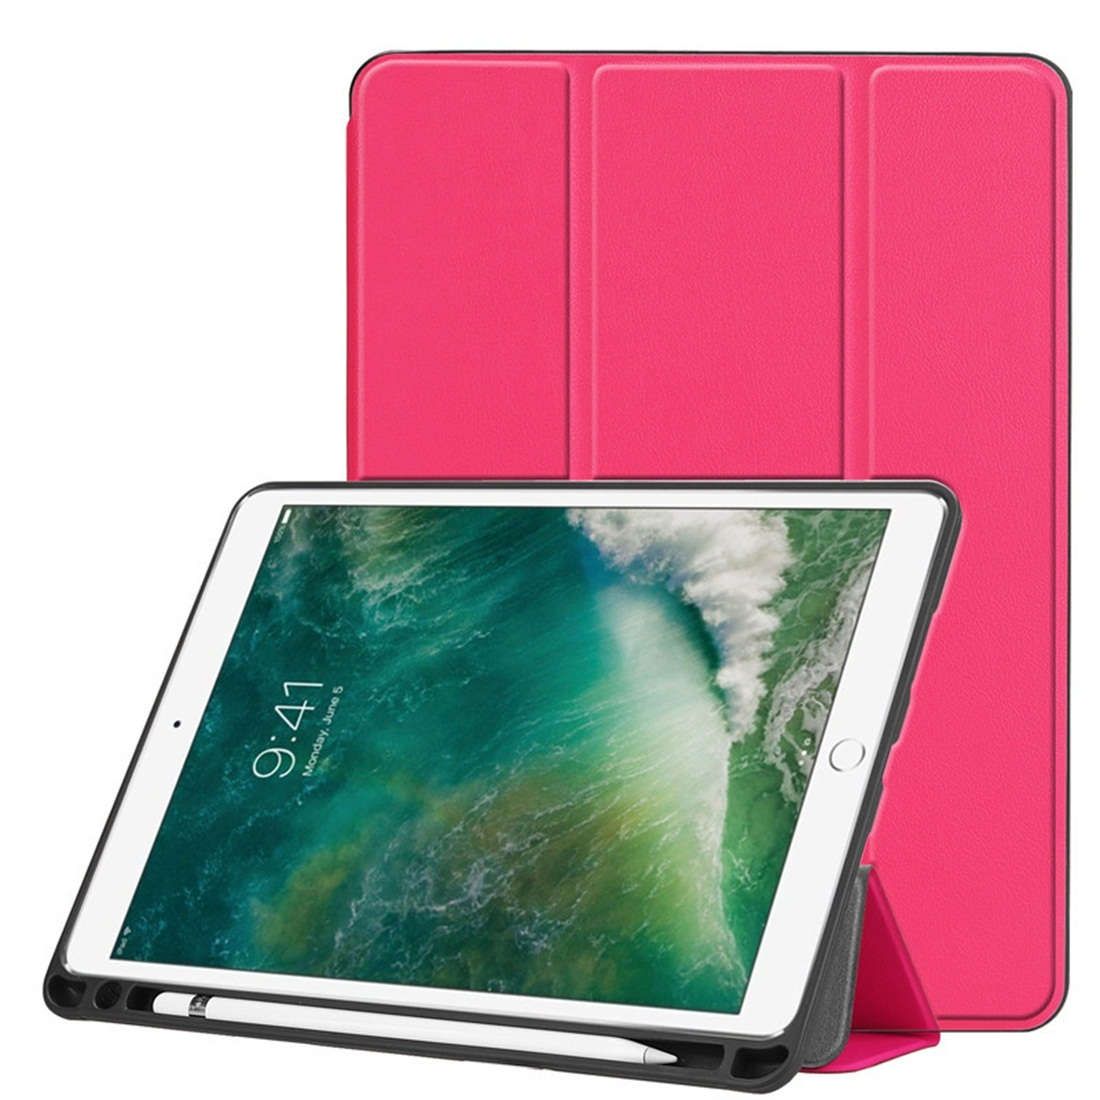 Custer Texture Leather iPad Air 3 Case (10.5 Inch)/ iPad Air (2019), with Pen Holder (Rose)